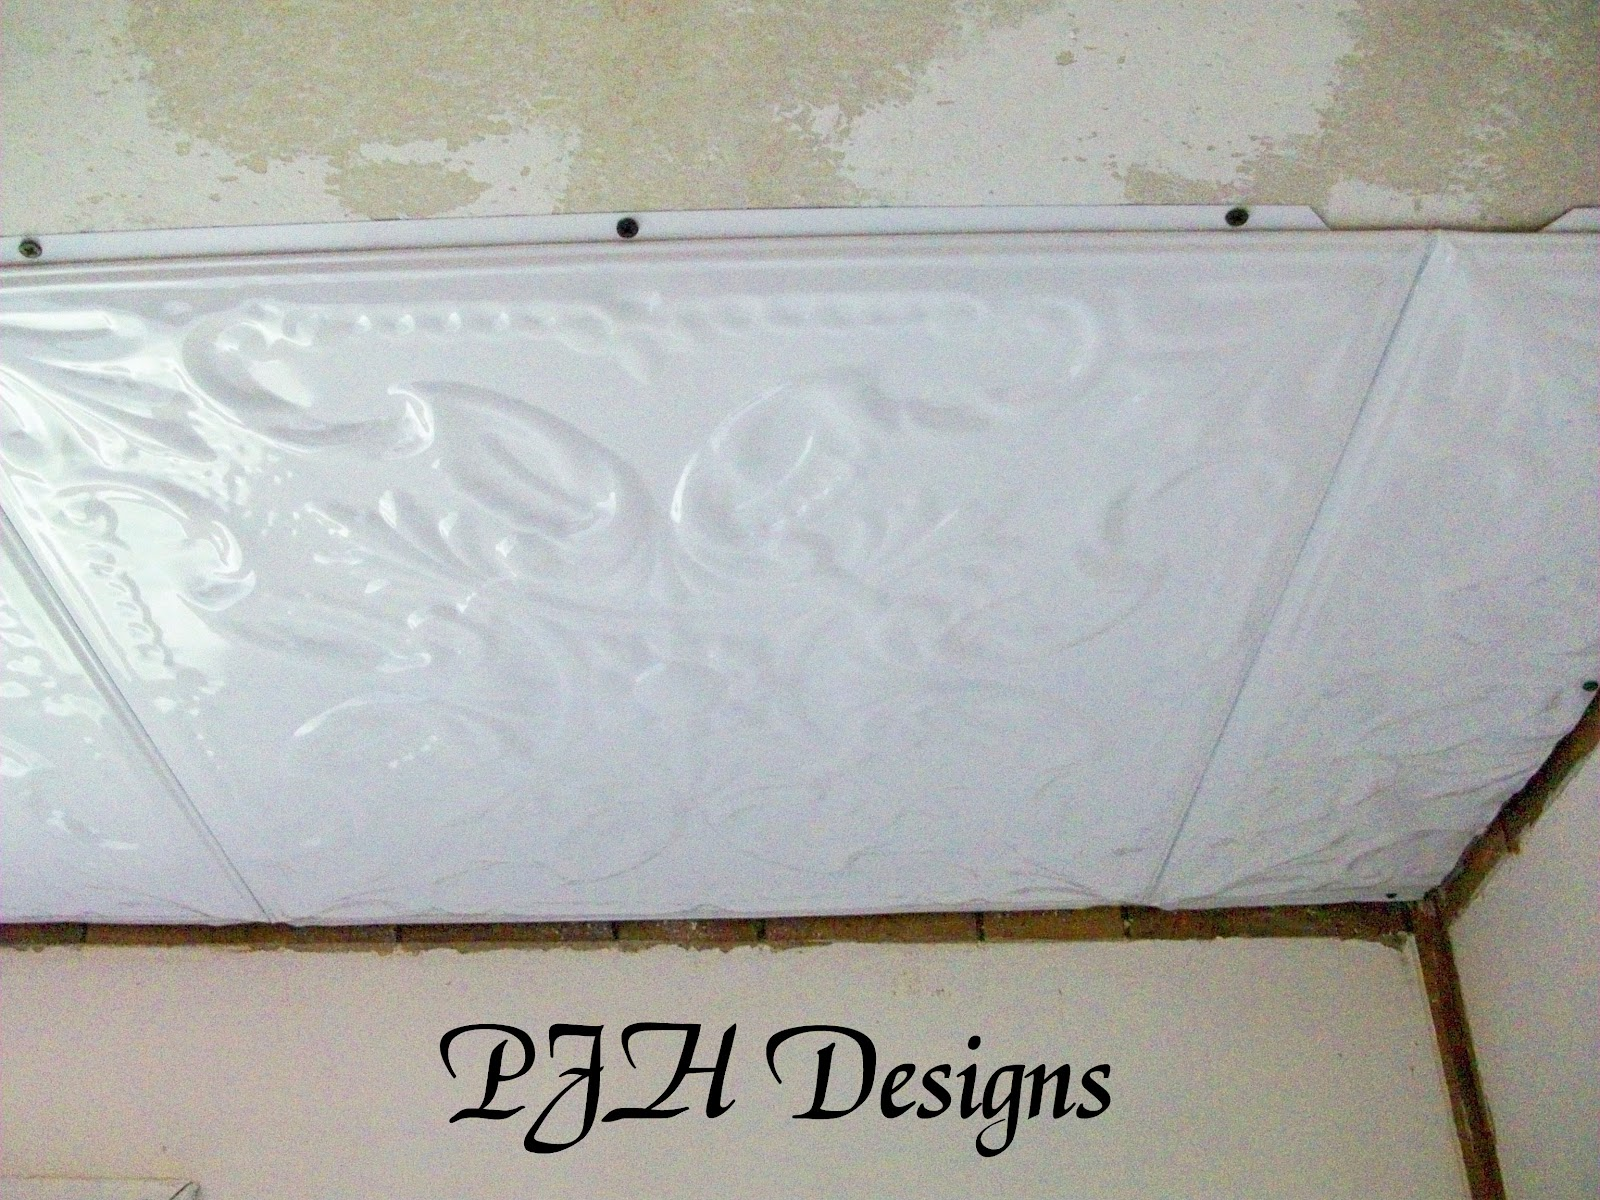 Pjh designs hand painted antique furniture kitchen remodel tin you start by screwing them to the sheetrock on two sides and then the next tile slides into slots on the one you just screwed in on the opposite two sides dailygadgetfo Images